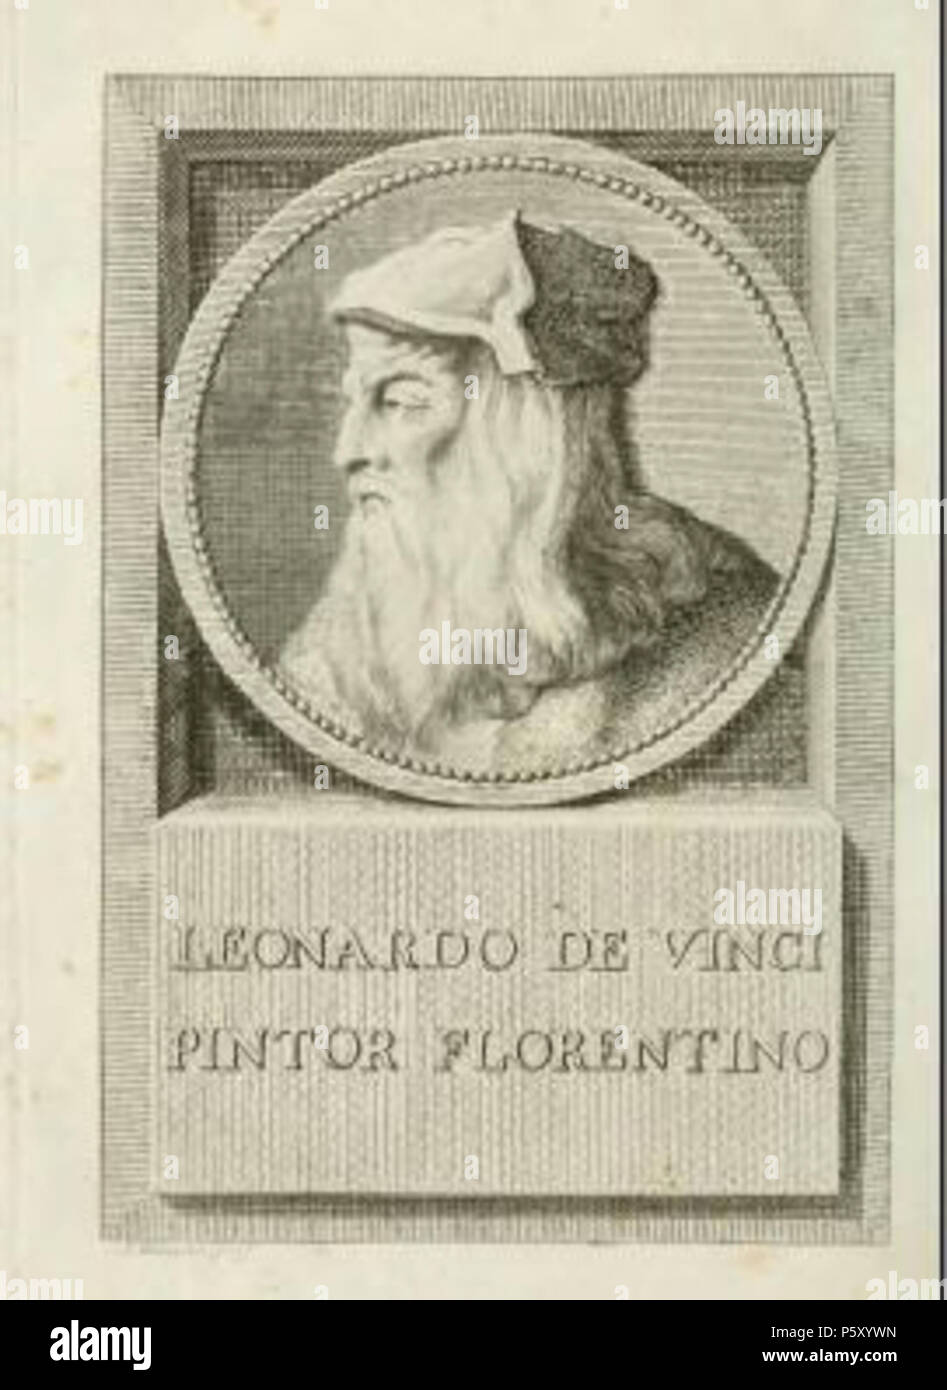 Tratado De Pintura Leonardo Da Vinci 1827 N A Leonardo Da Vinci 1452 1519 Alternative Stock Photos